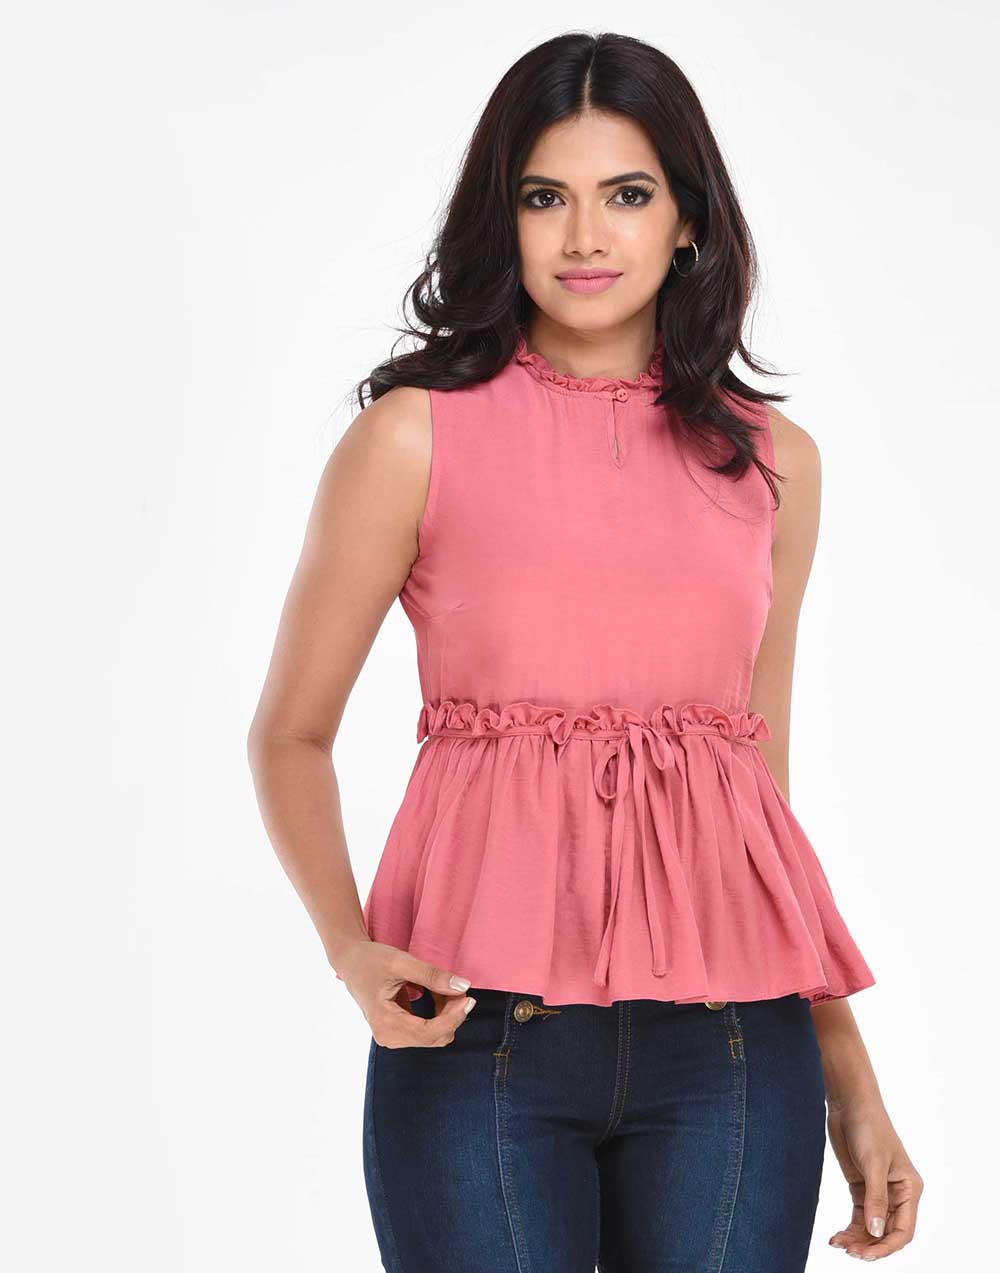 Top Blouse Designs In Sri Lanka Polo T Shirts Outlet Official